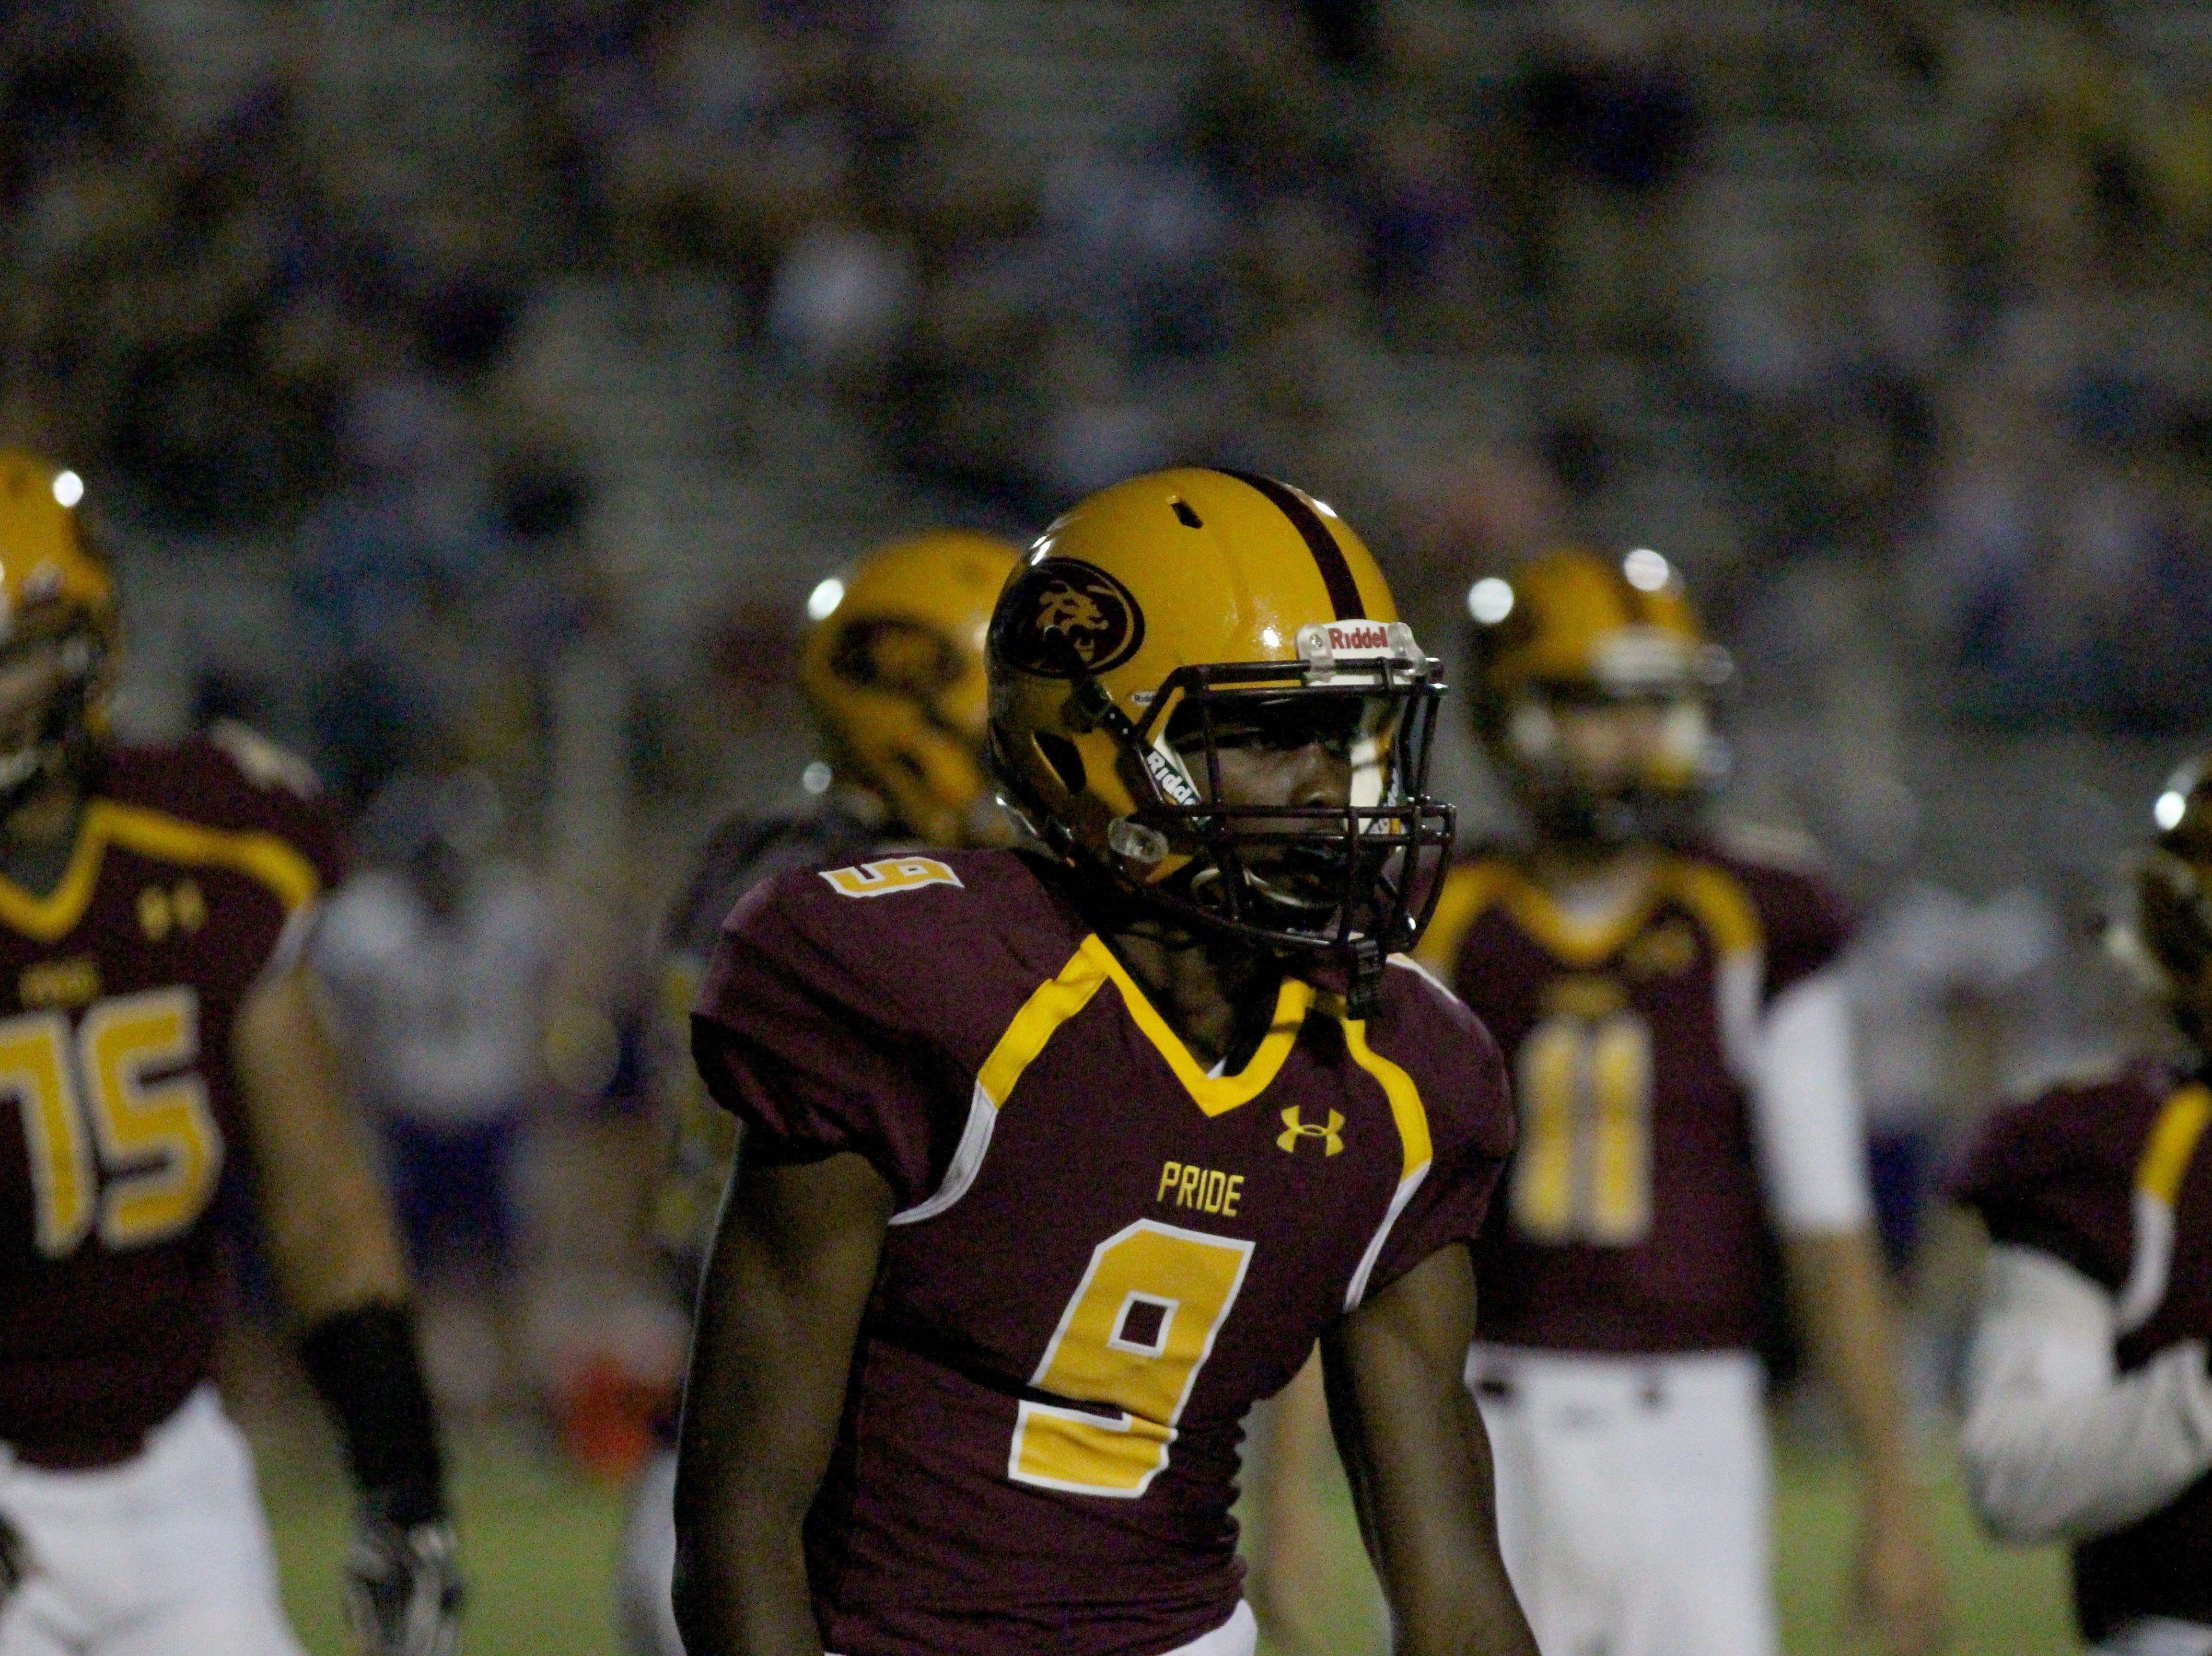 Mountain Pointe's Dominique Davis looks to the sideline in game against Queen Creek on Friday night at Mountain Pointe High School on Sept. 21, 2018.